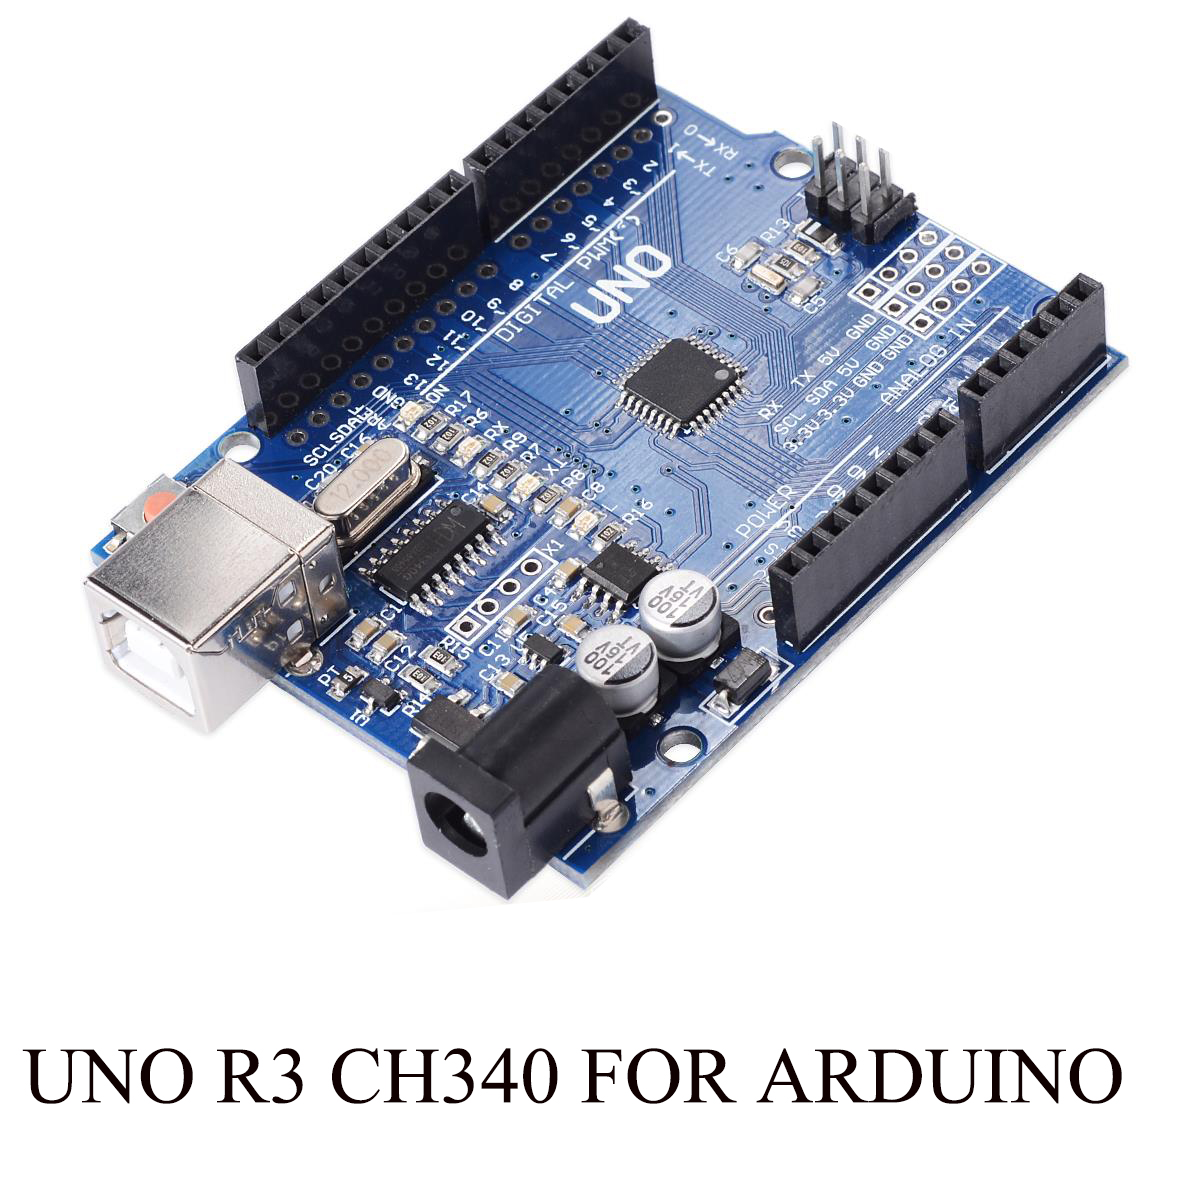 10PCS/LOT UNO R3 MEGA328P CH340 CH340G for Arduino UNO R3 + USB Cable Free Shipping